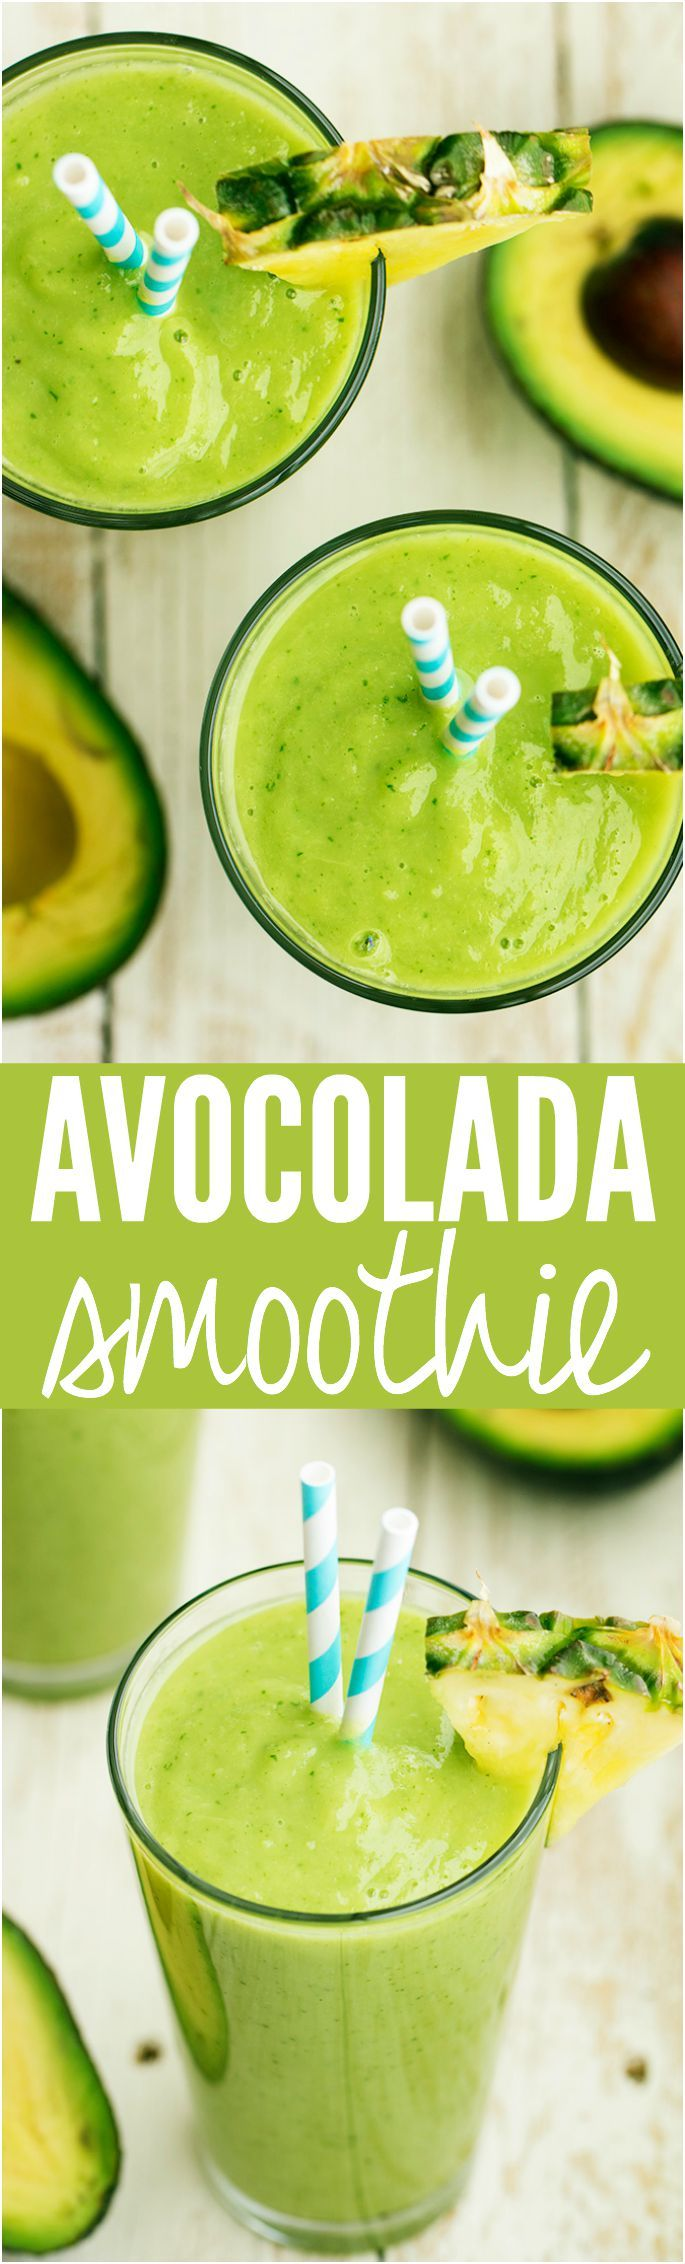 Creamy Avocolada Smoothie - Has avocado, spinach, kale, pineapple, coconut and lime and is the smoothest BEST smoothie you will have!